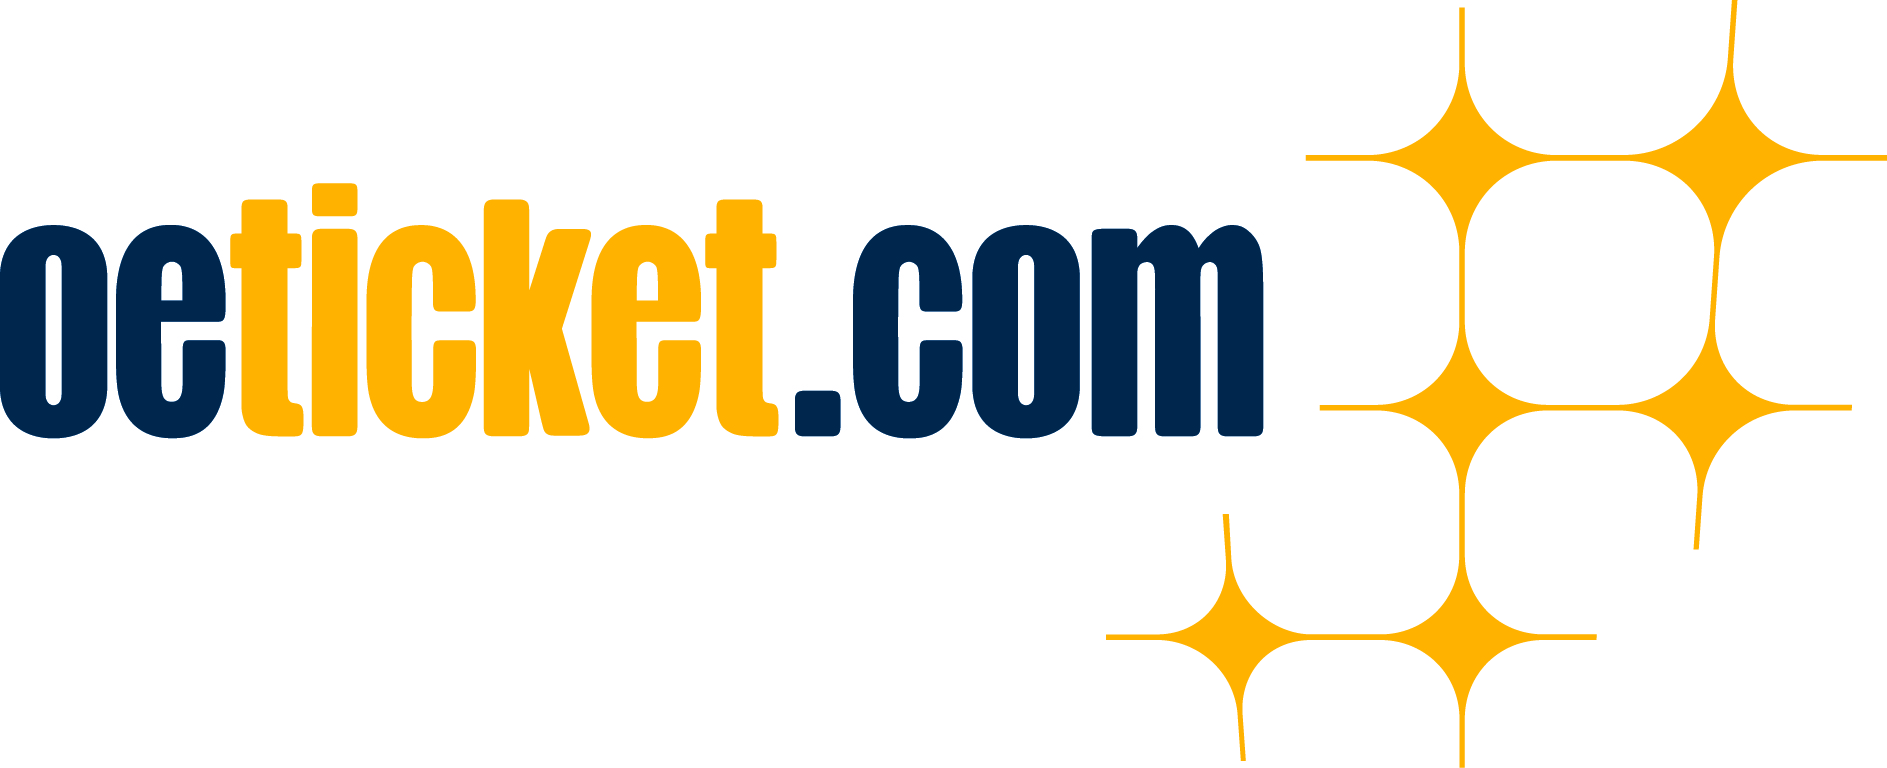 EVE_OETicket_com_pos_4c